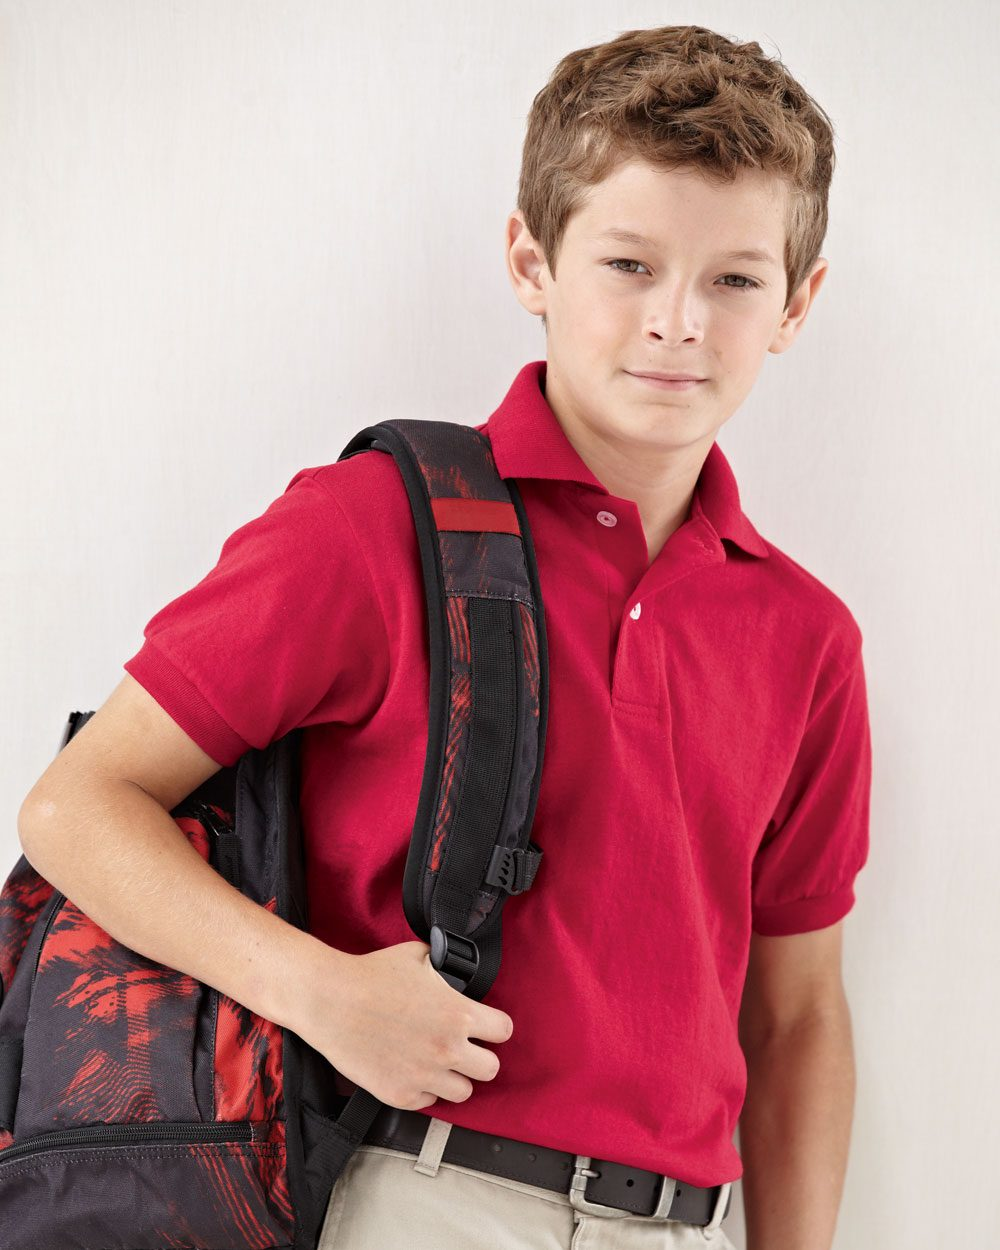 be3c34056 Hanes - Youth Ecosmart Jersey 50/50 Polo Sport Shirt - 054Y - 8 Colors -  XS-XL